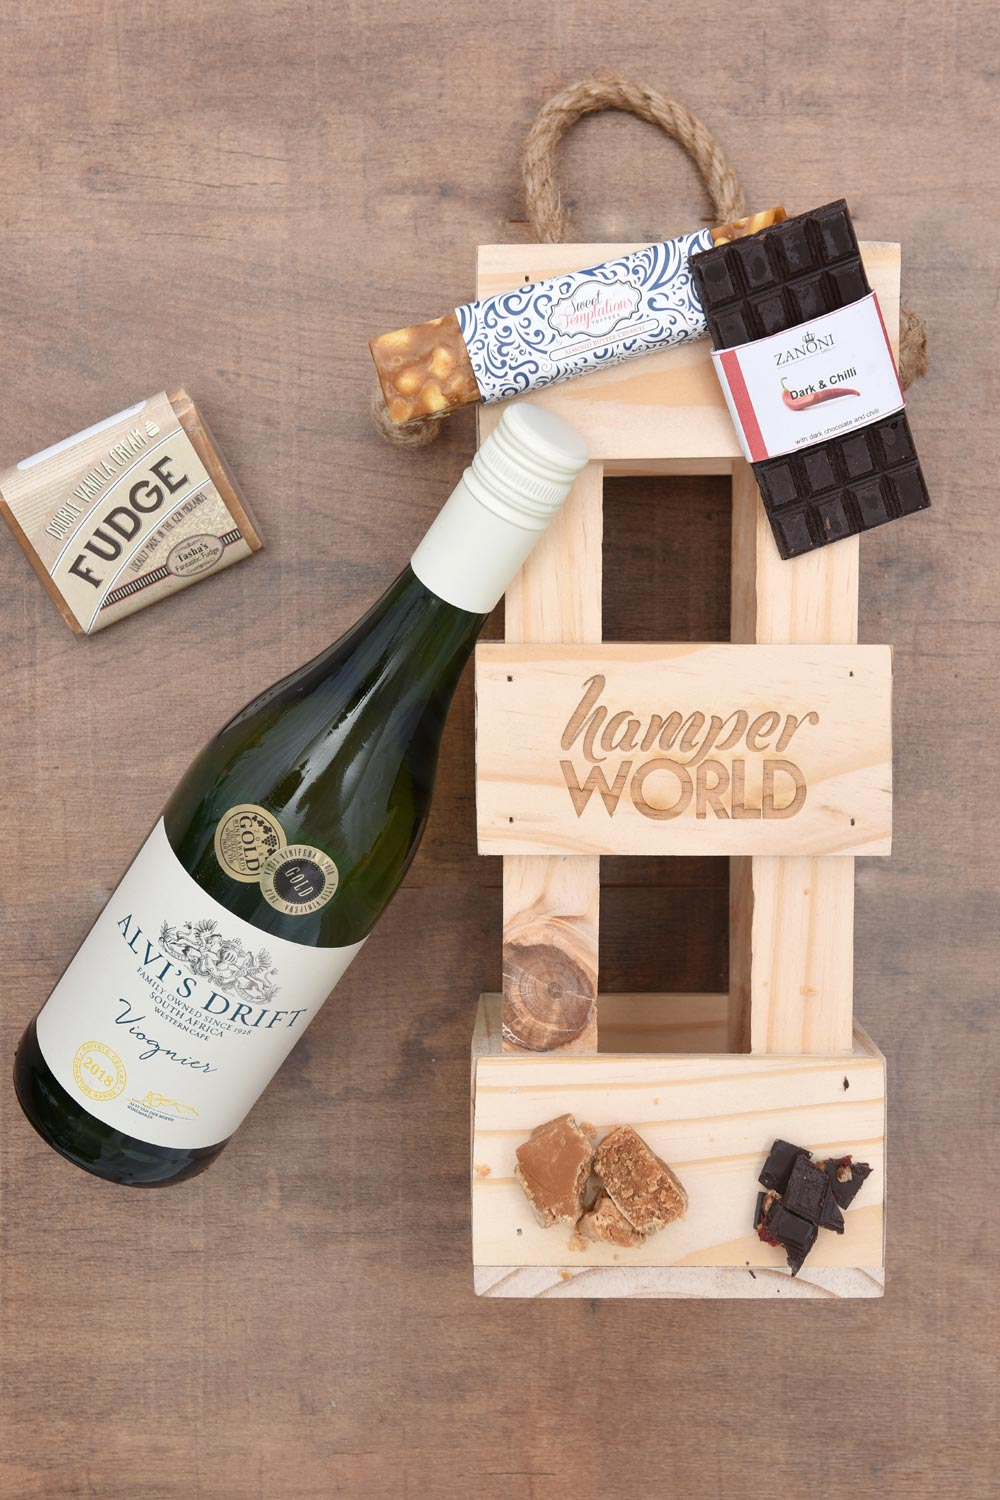 Alvi's Drift, Chocolate & Fudge Gift Hamper | Hamper World